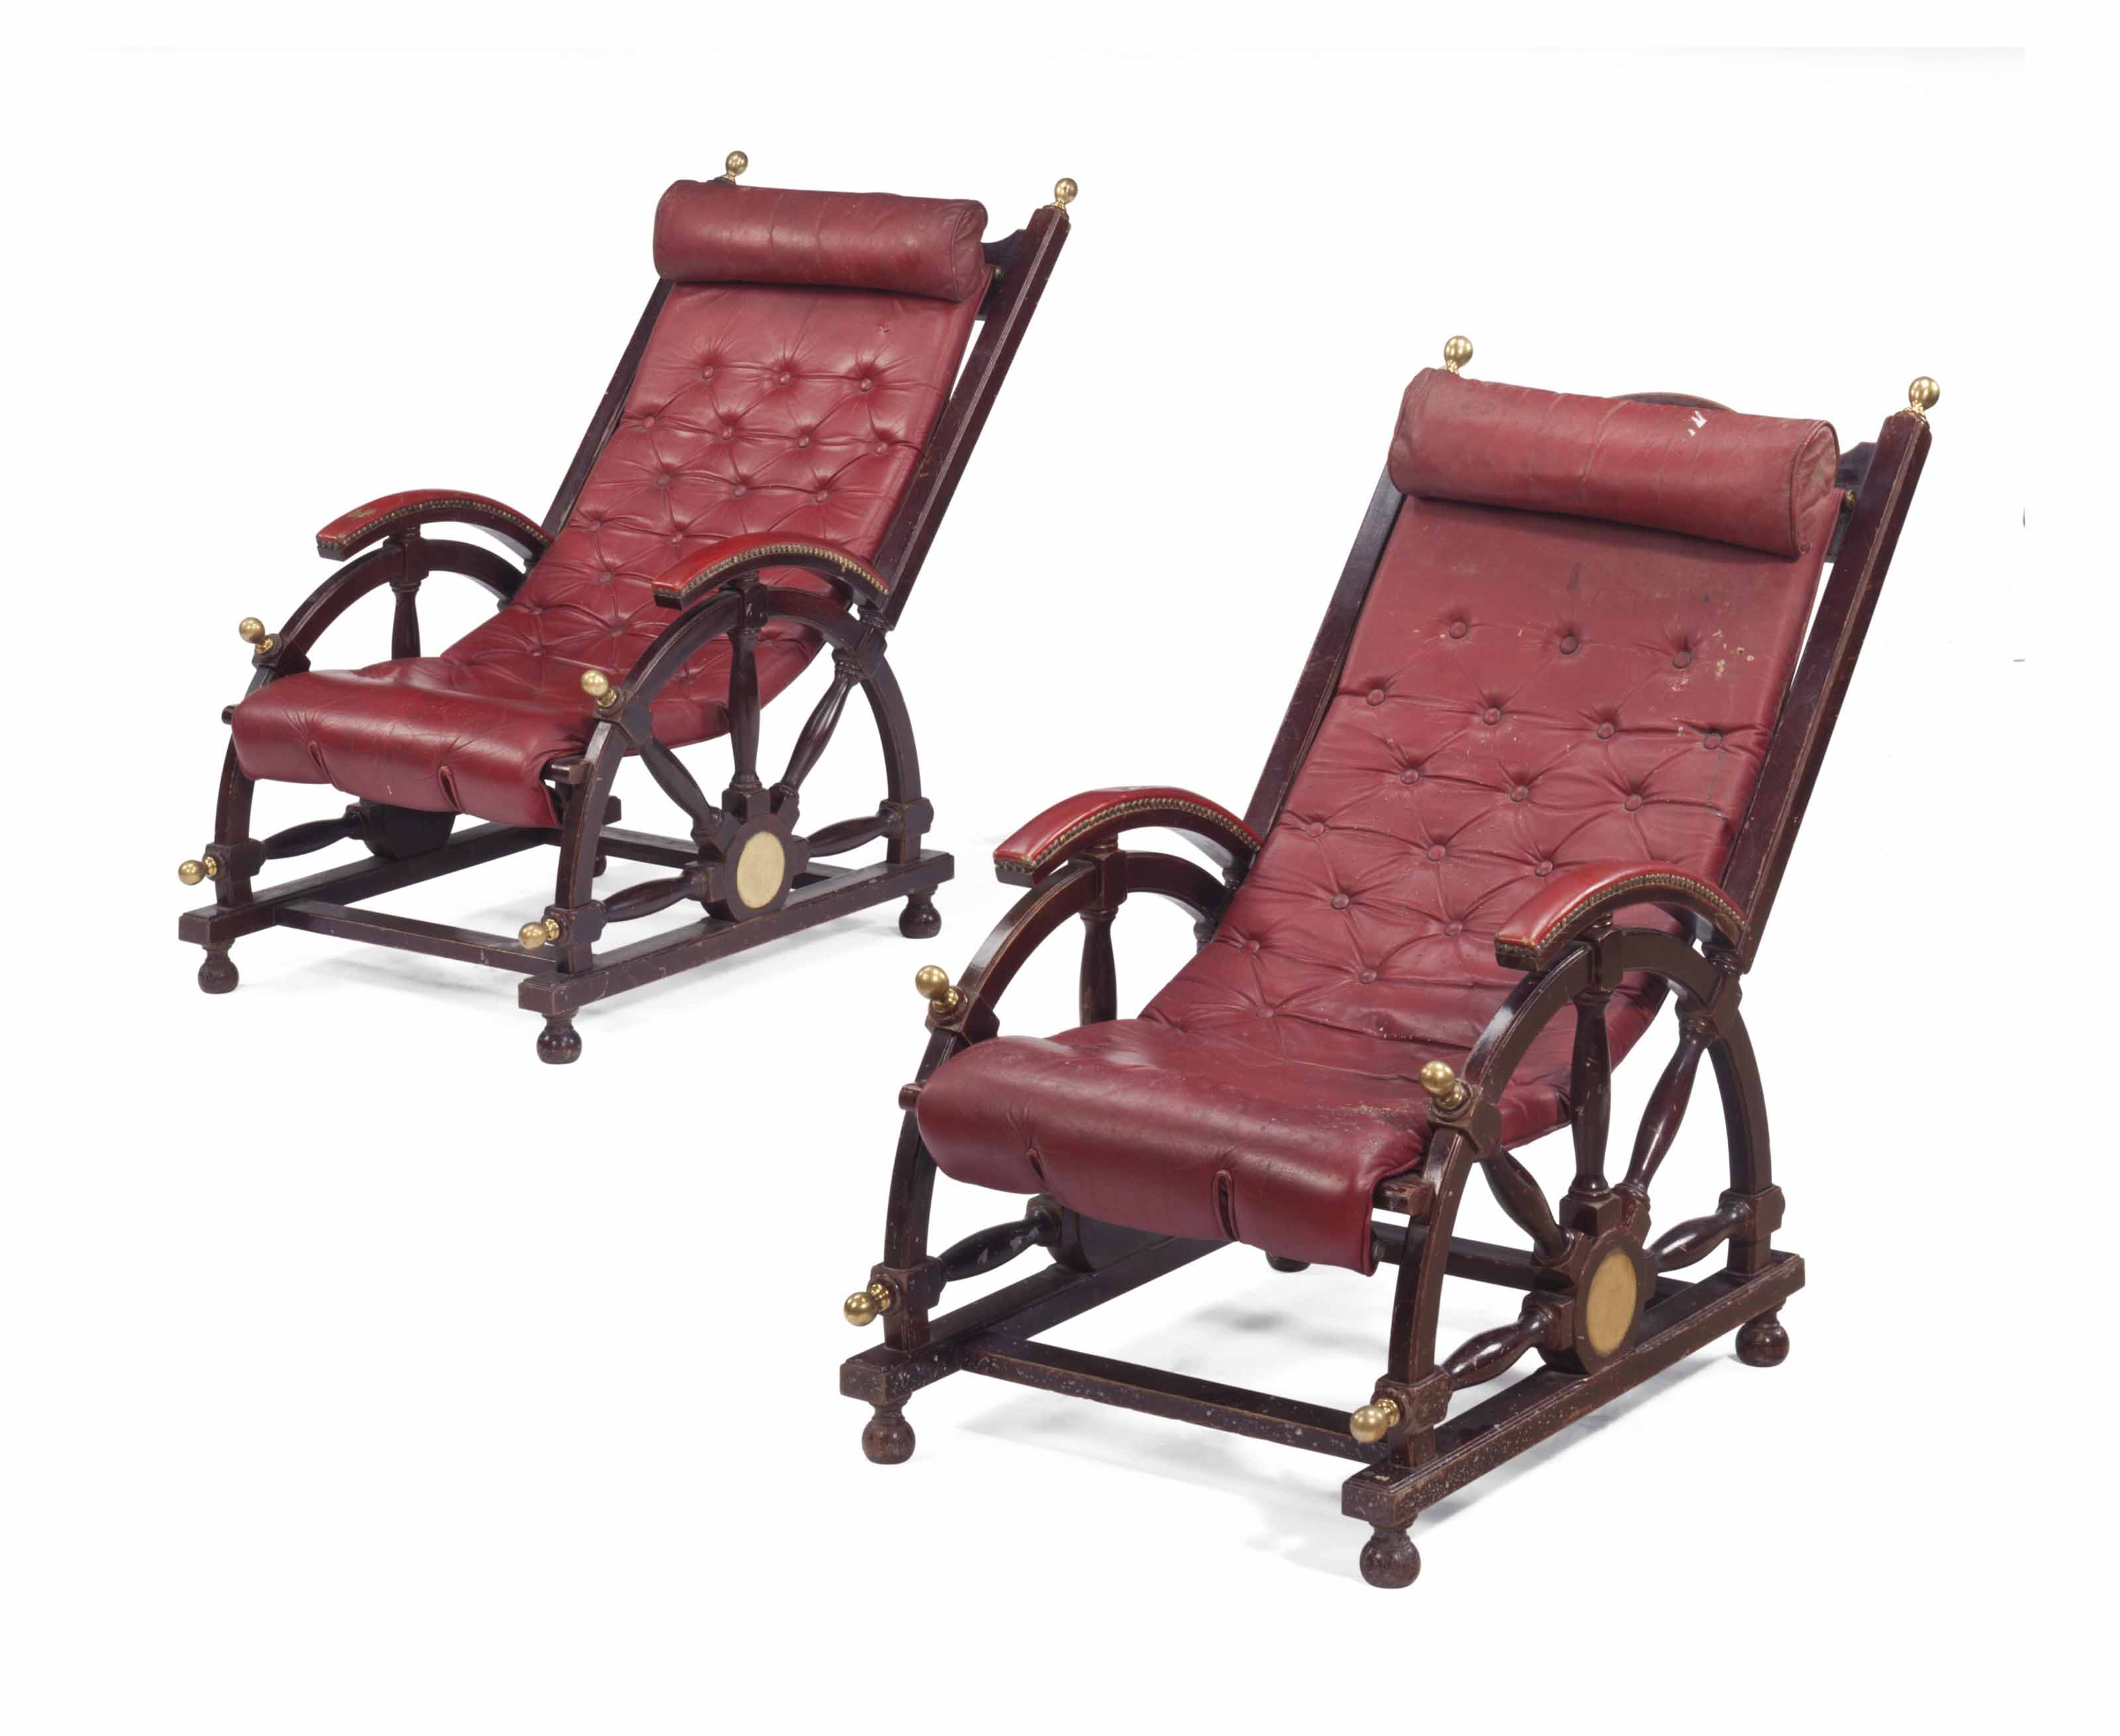 wright from gino design giudici october four chair switzerland battista auction chairs set auctions swimming of deck lido and club